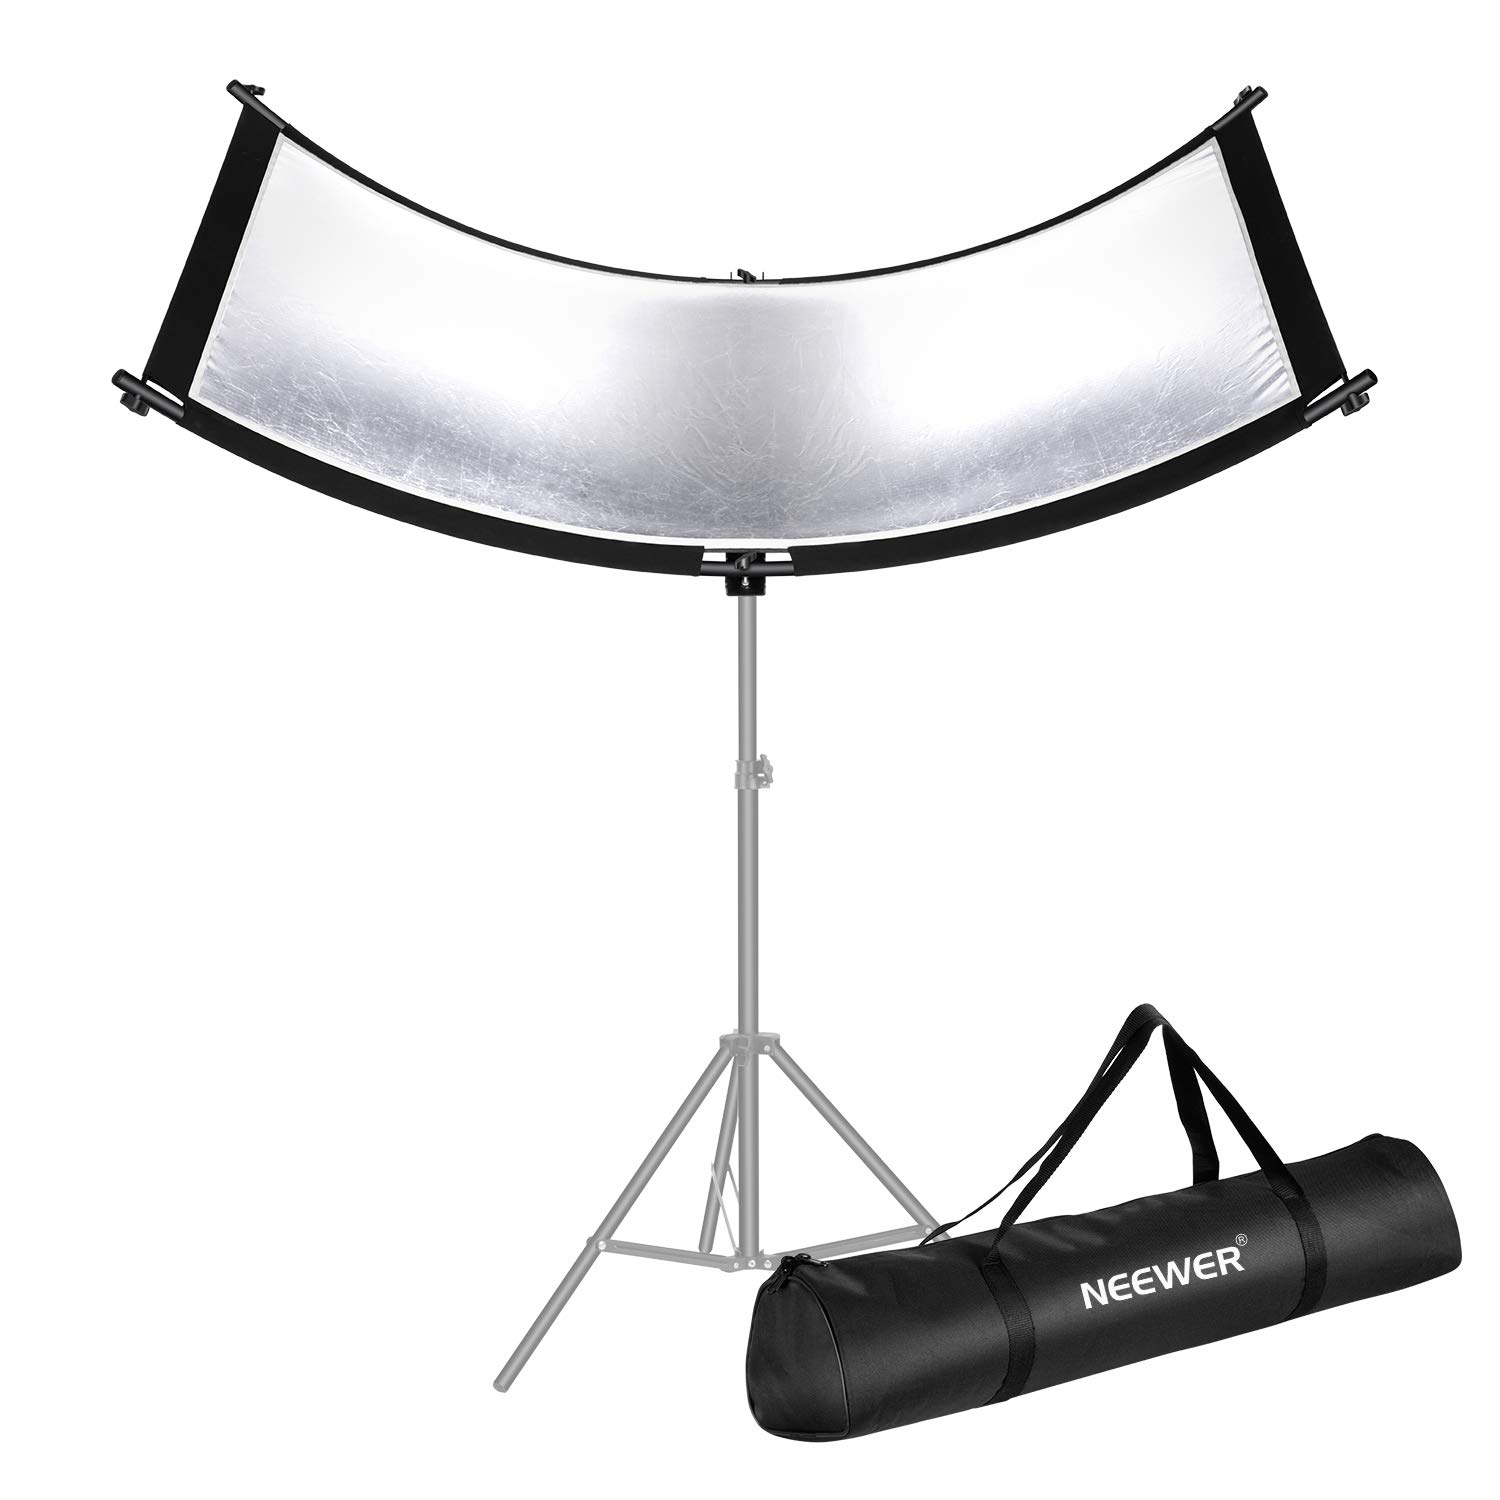 Neewer Clamshell Light Reflector/Diffuser for Studio and Photography Situation with Carry Bag, 66×24 Inch Arclight Curved Light Reflector, Black/White/Gold/Silver, Eyelighter Reflector for Photography by Neewer